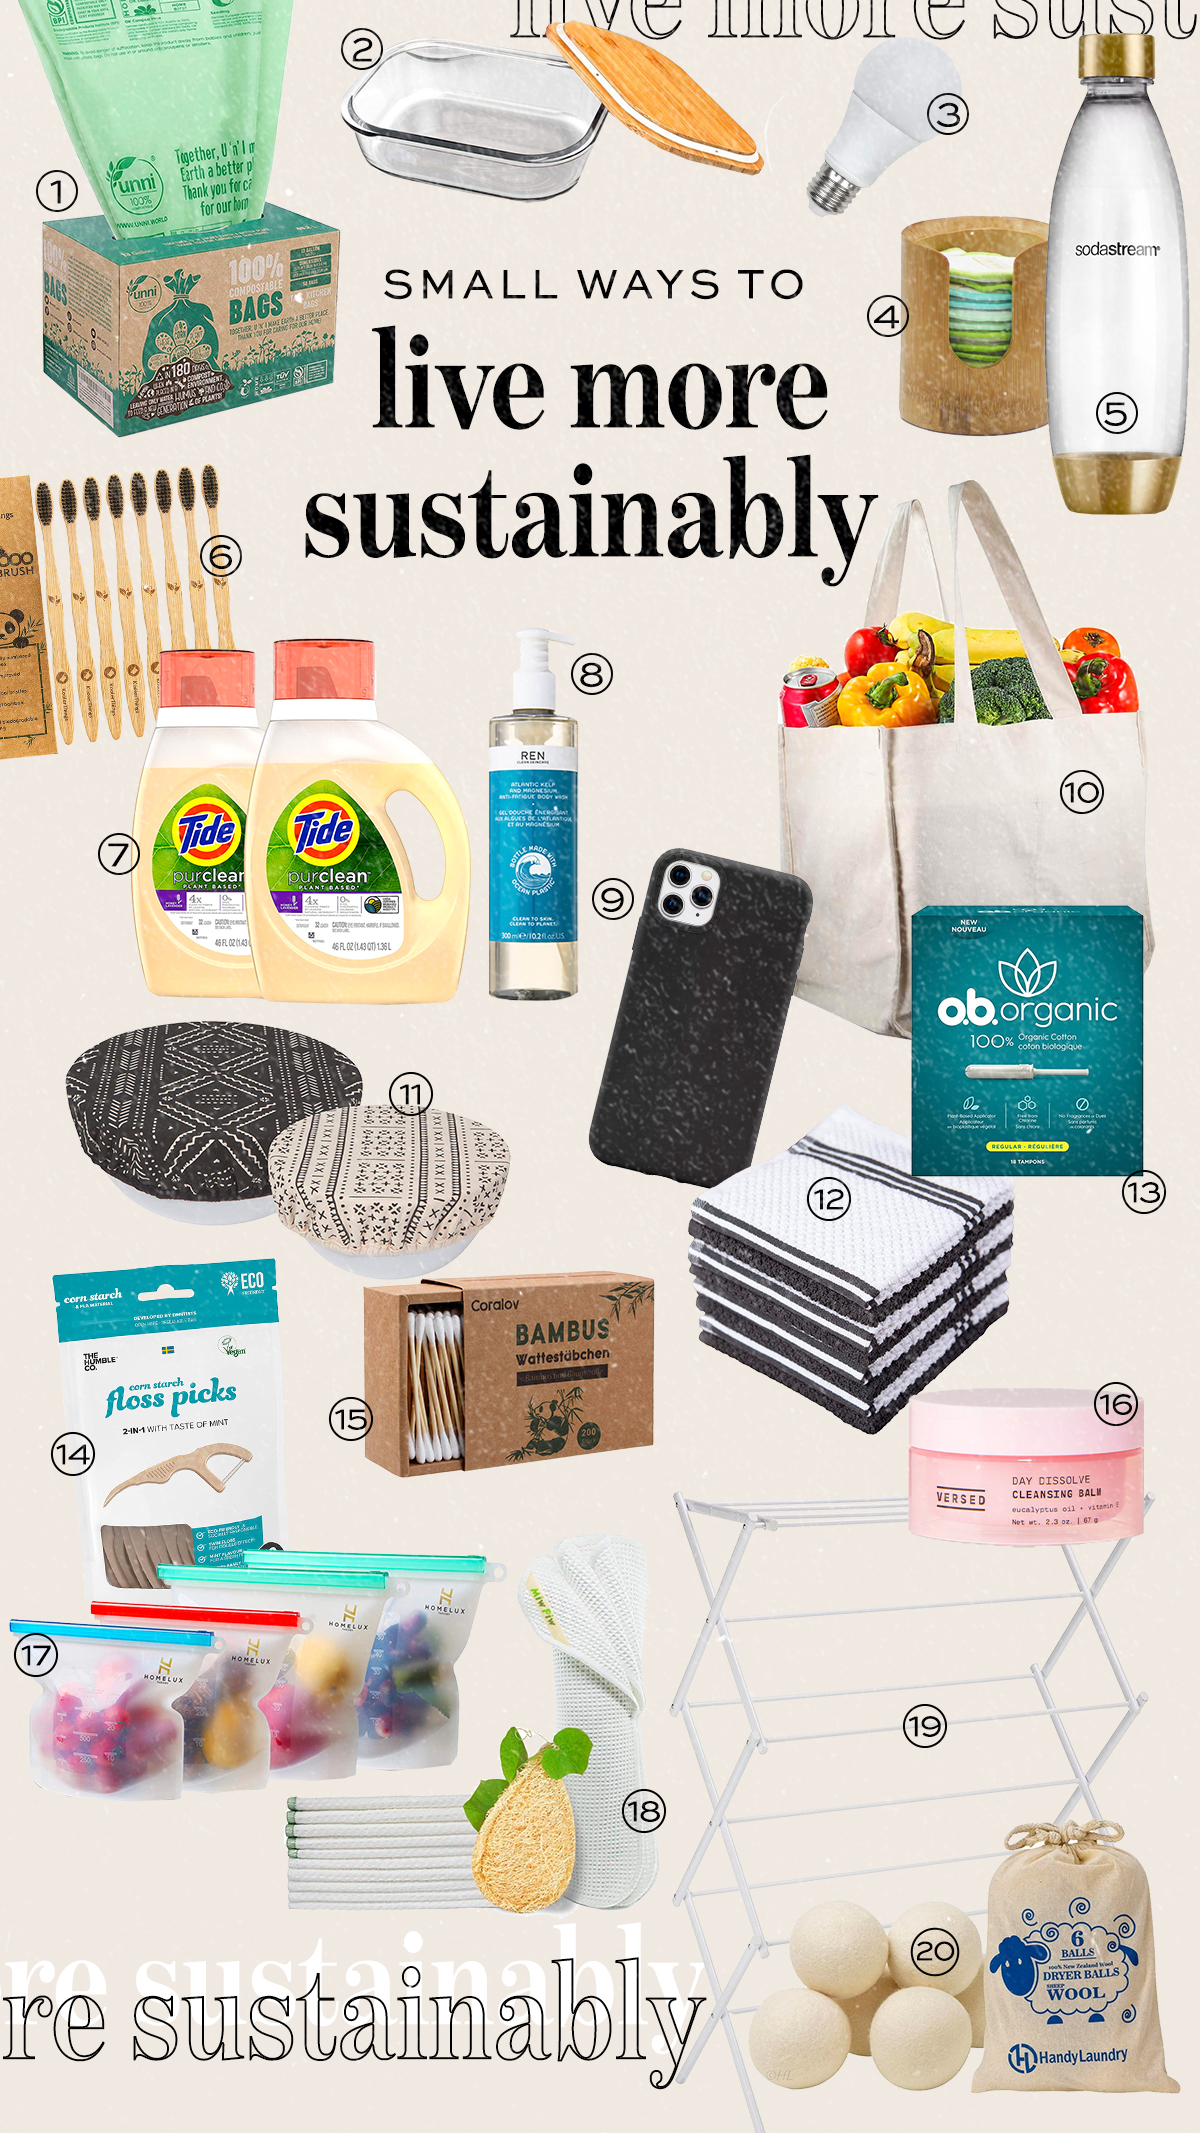 Small ways to live more sustainably collage